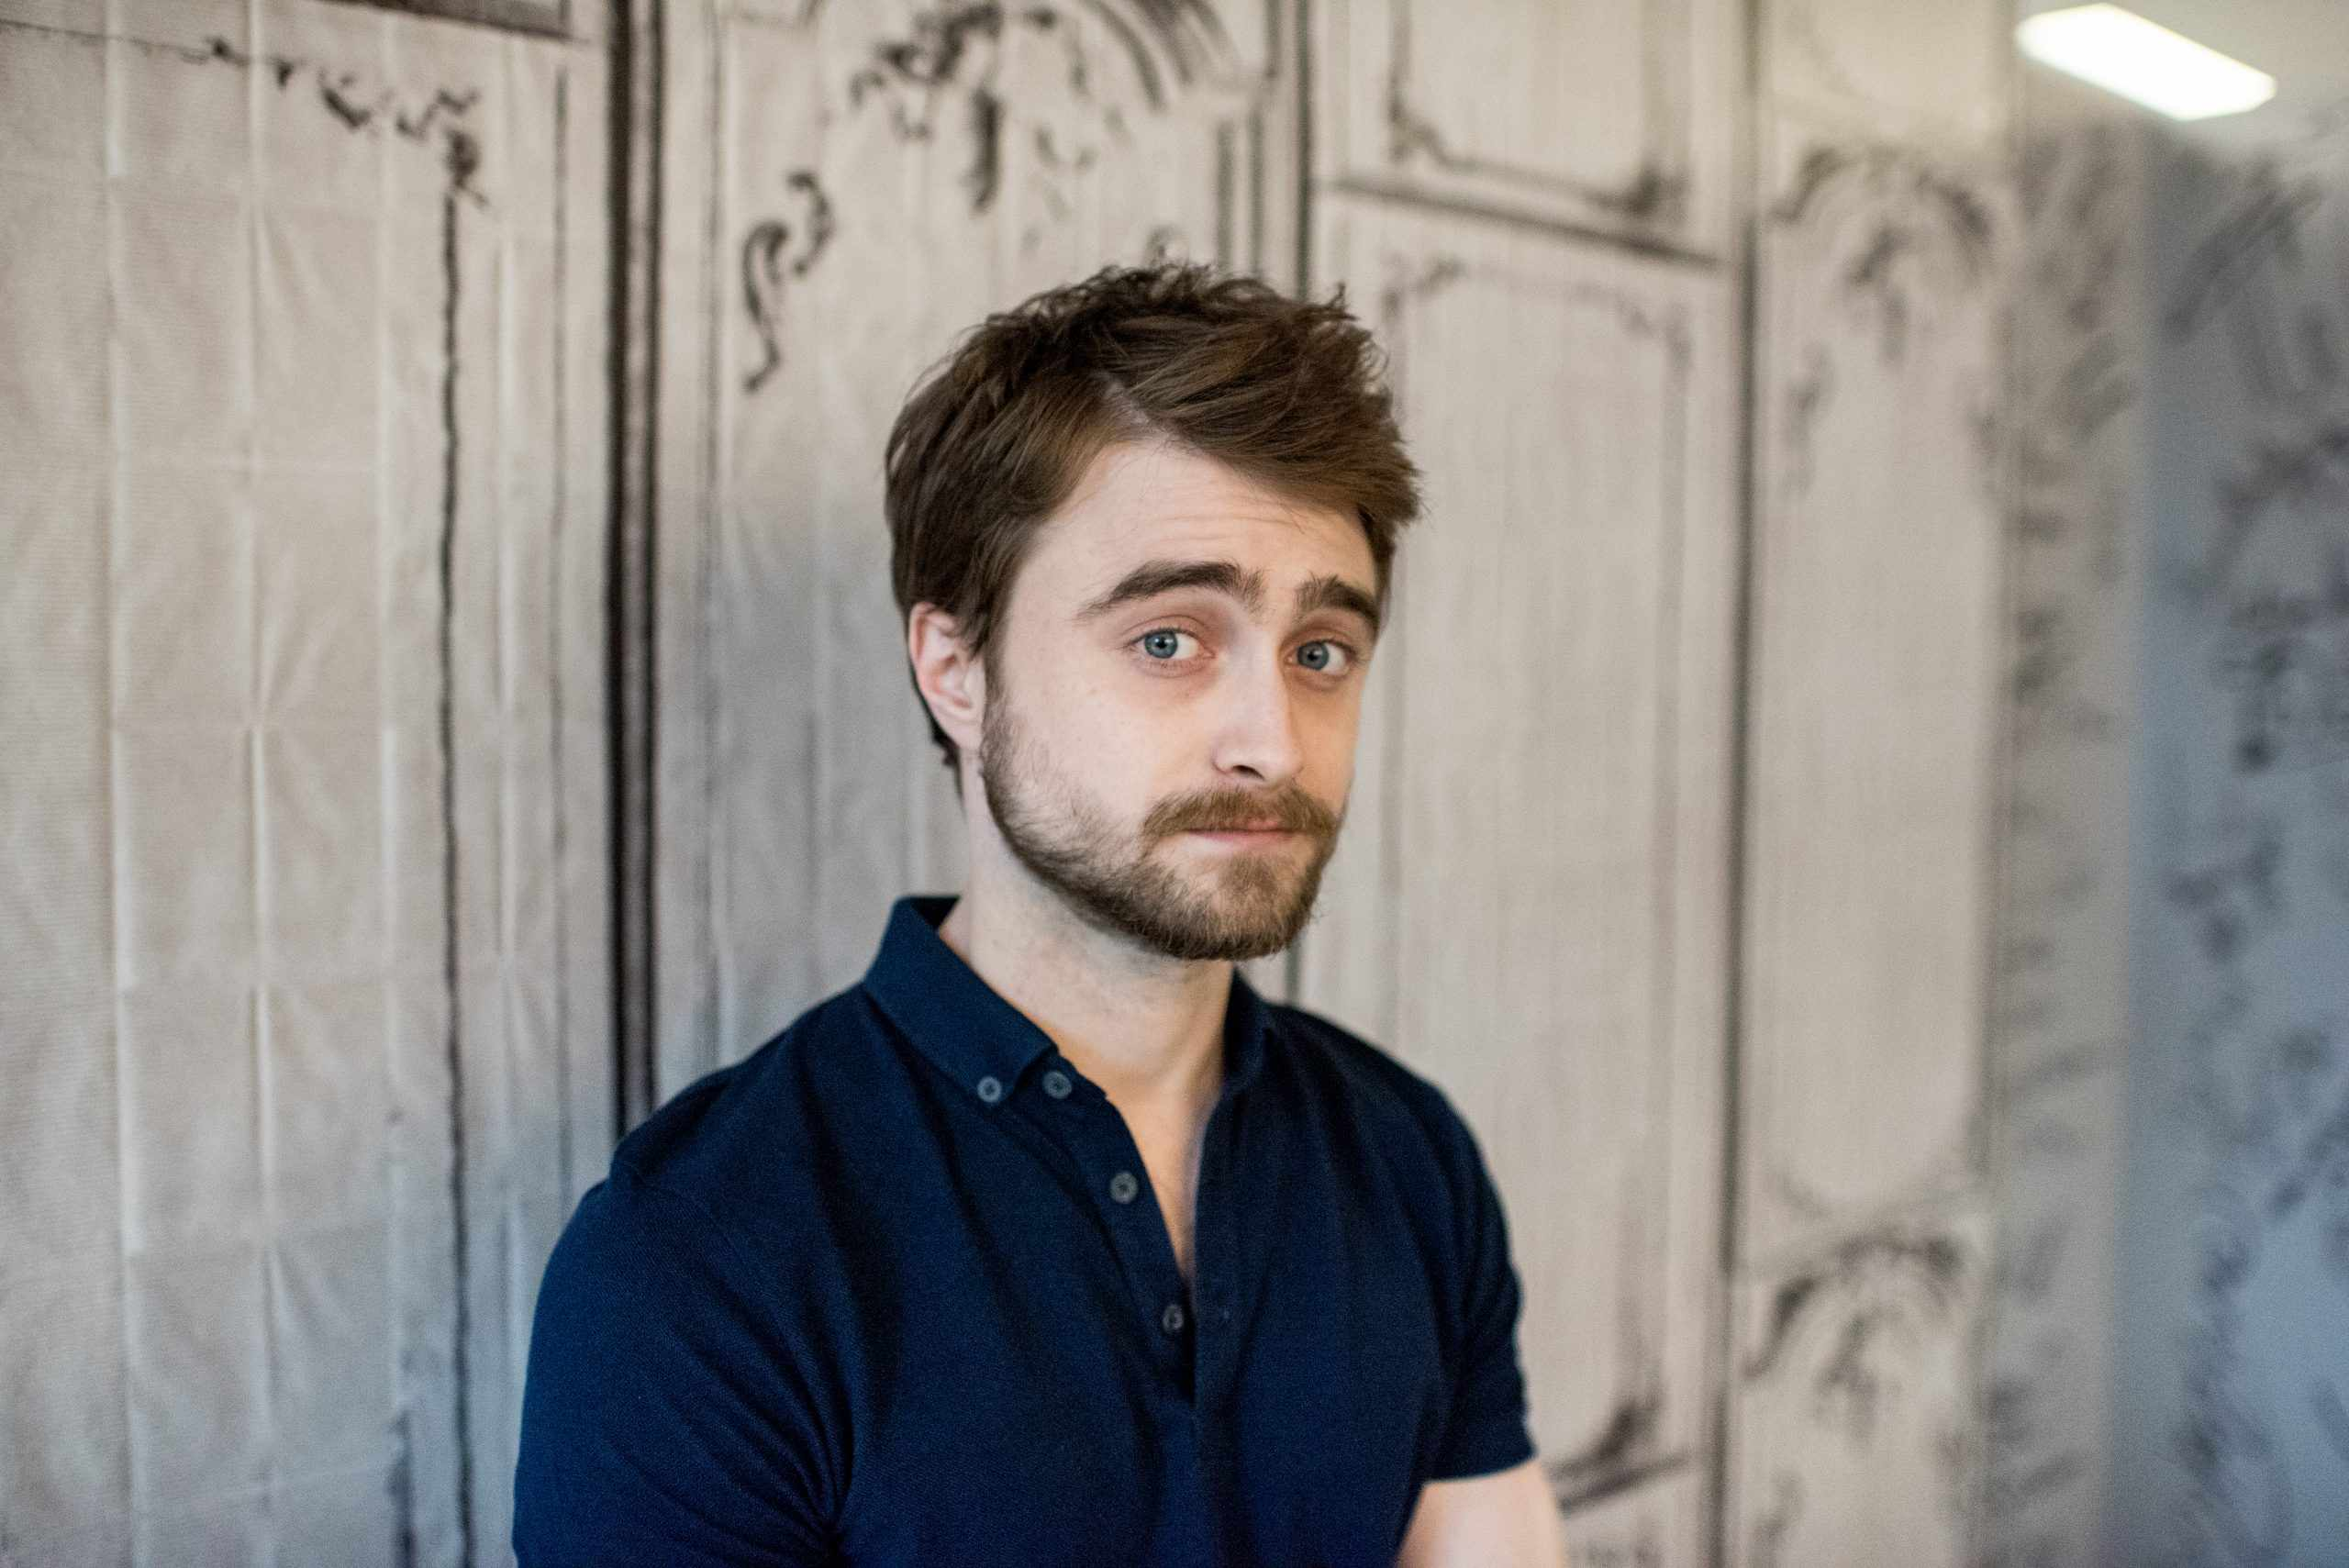 Daniel Radcliffe reads first chapter of Harry Potter - here's which stars come next - RadioTimes